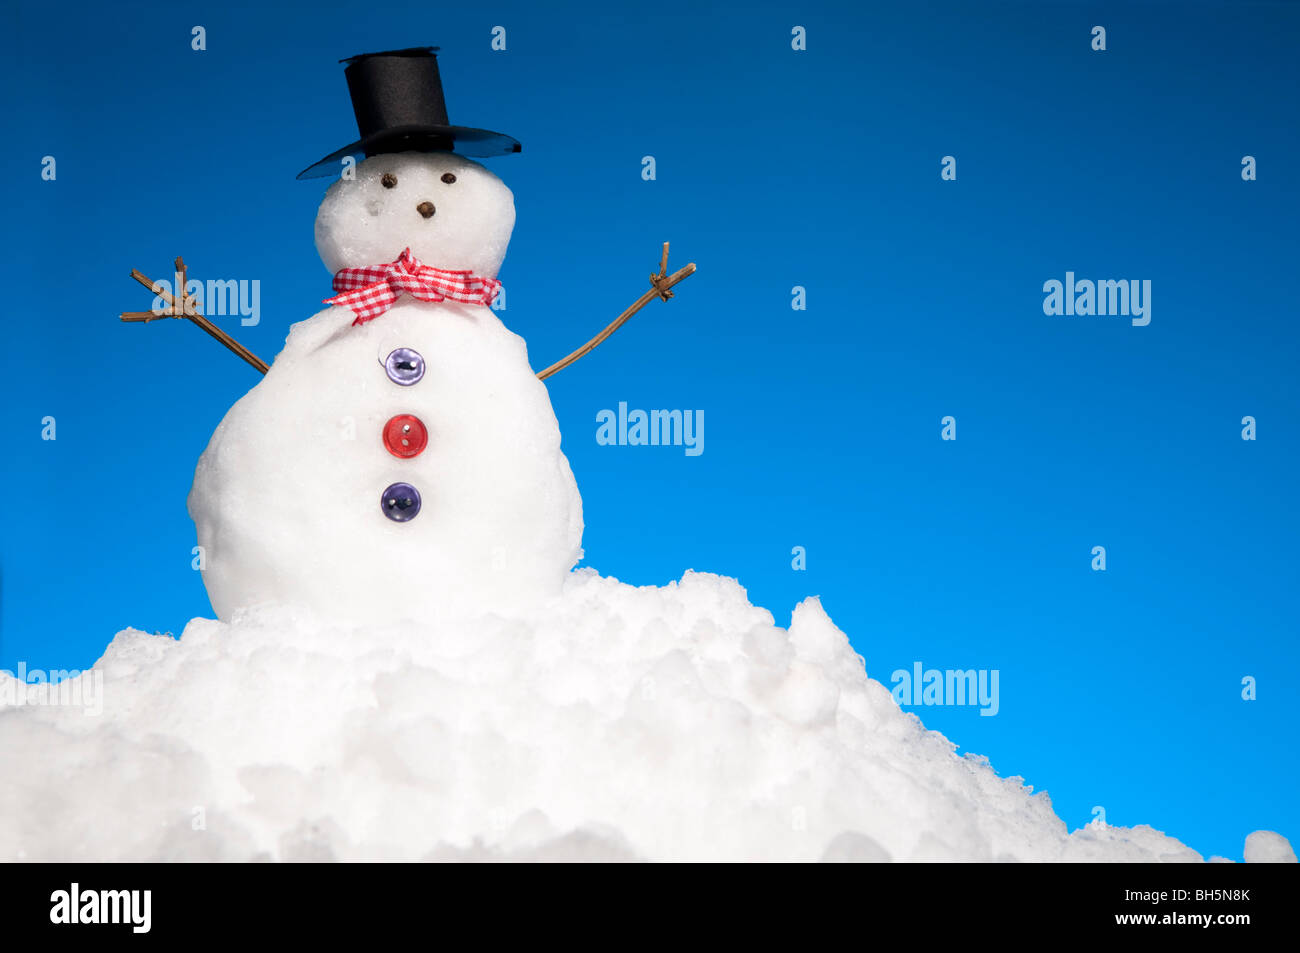 Miniature Snowman On Mound Of Snow With Blue Sky Behind - Stock Image